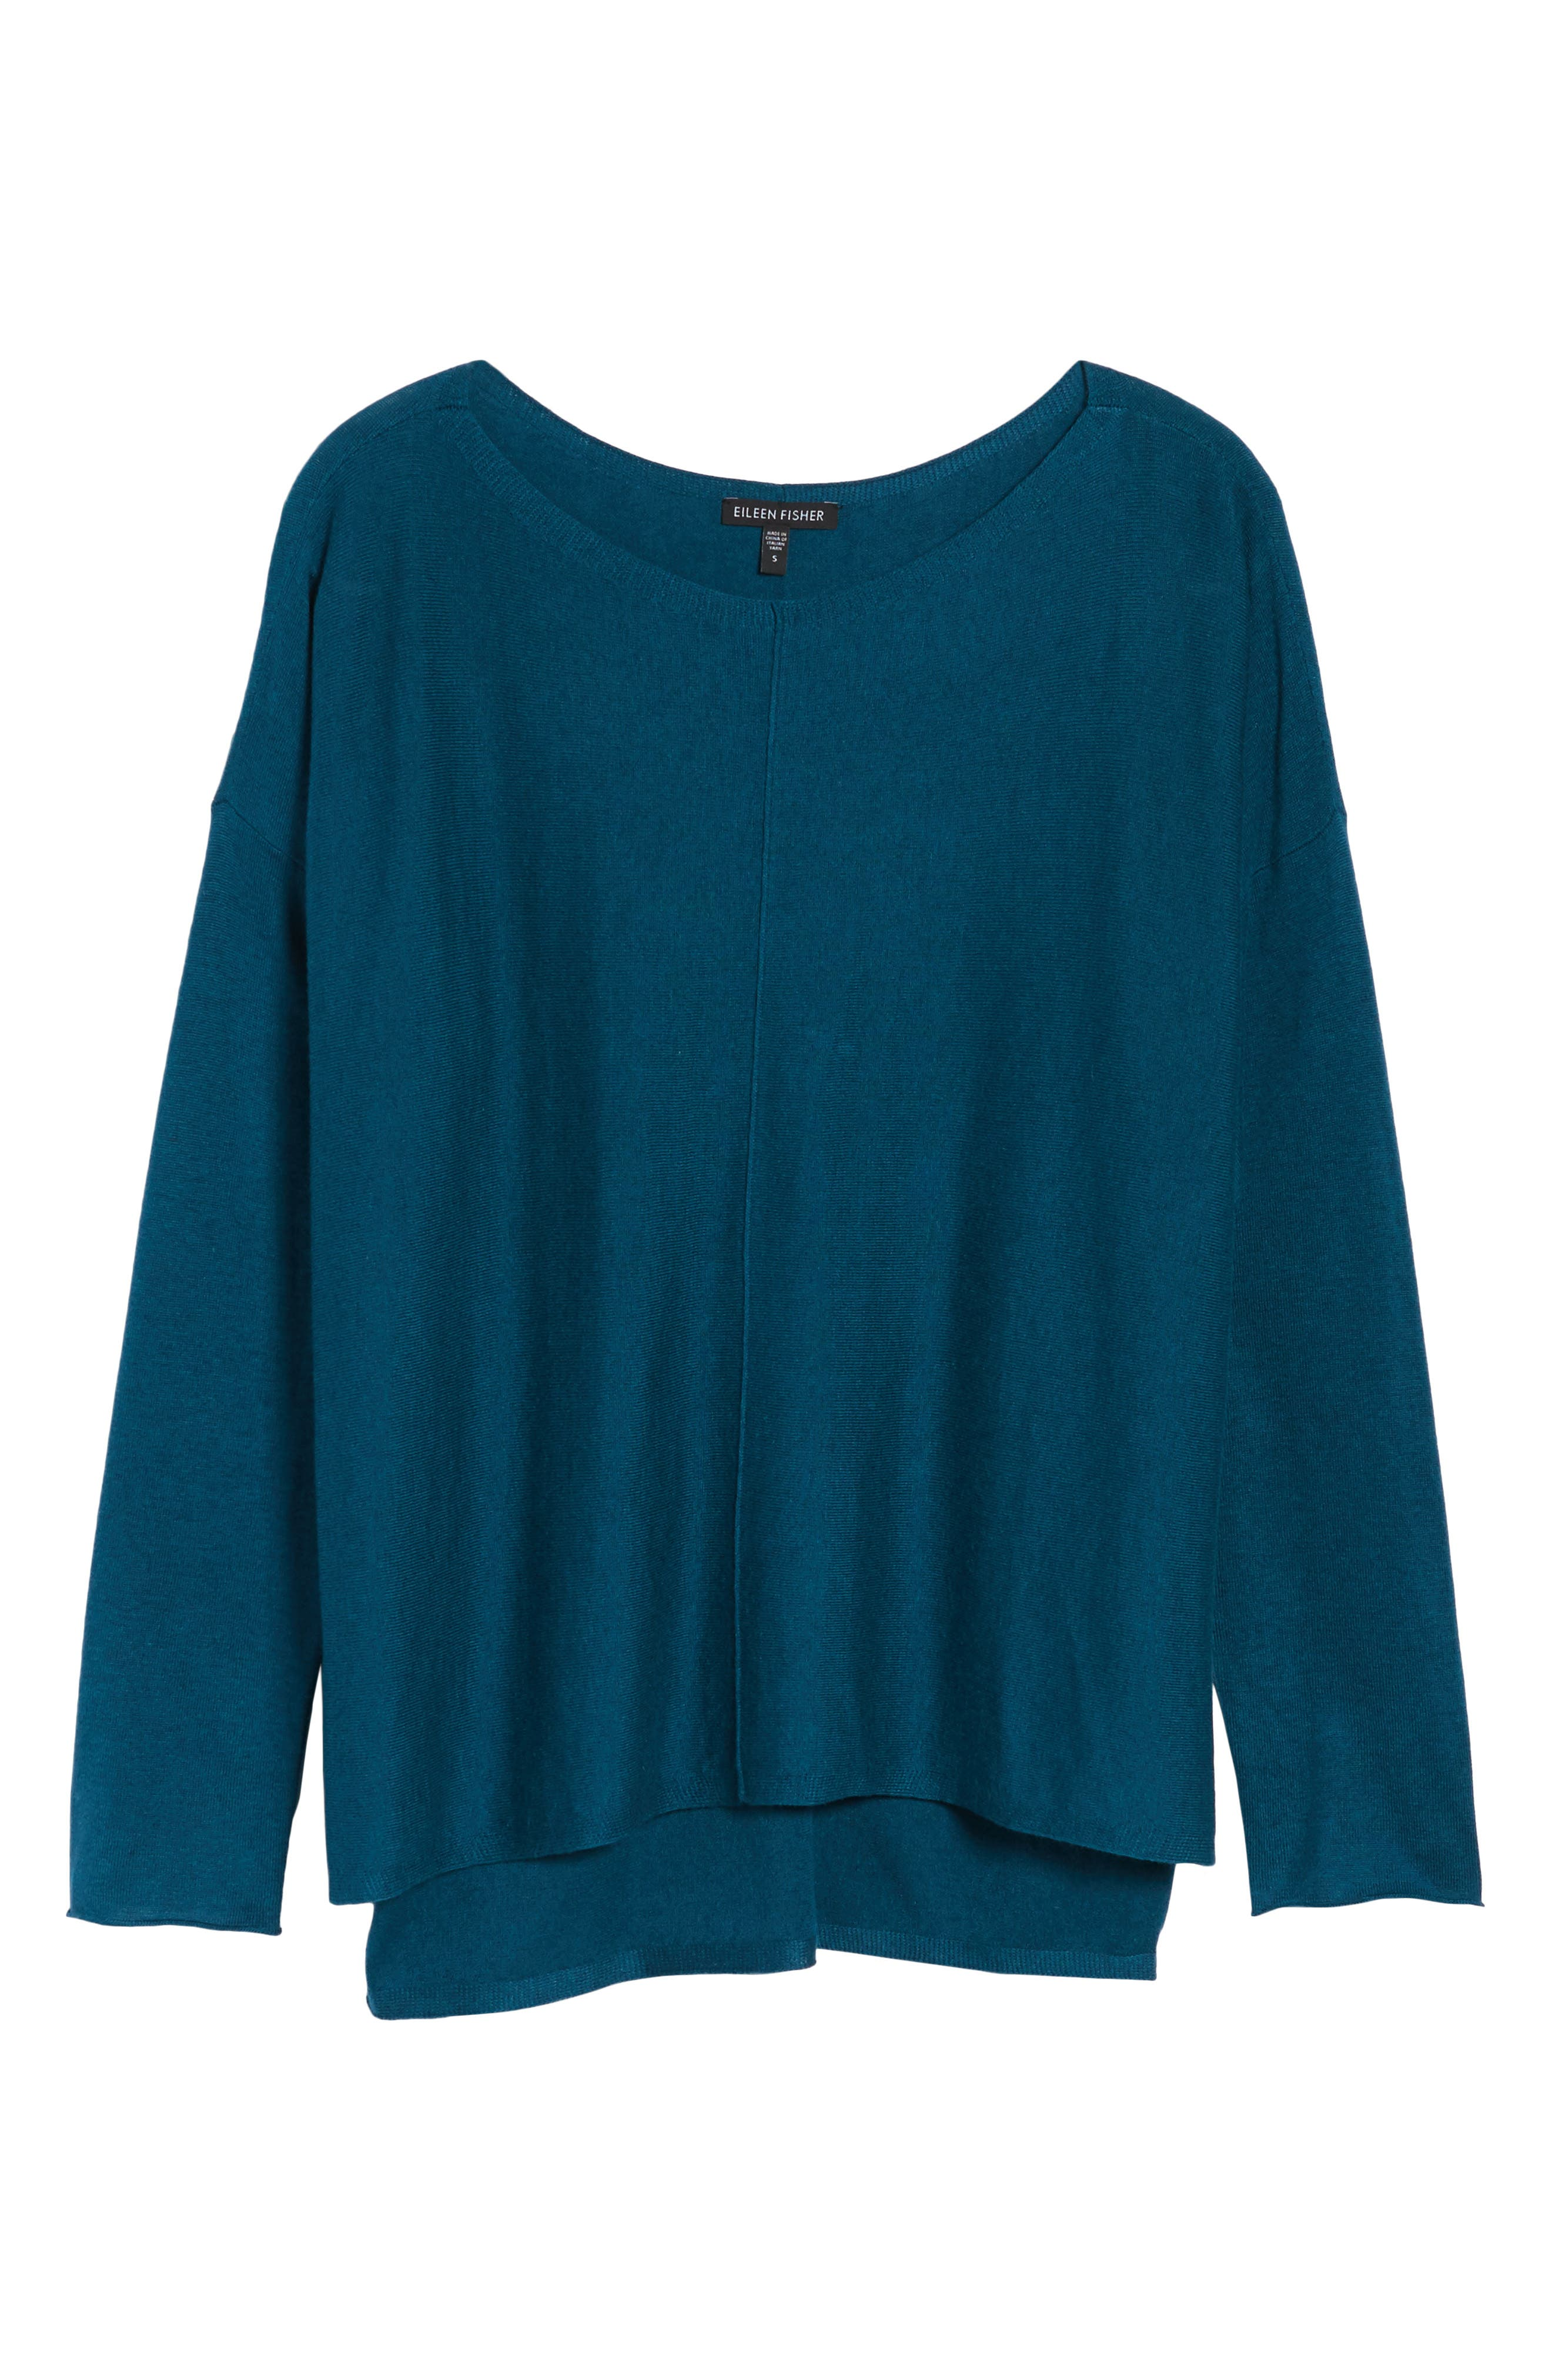 Tencel<sup>®</sup> Lyocell Blend High/Low Sweater,                             Alternate thumbnail 6, color,                             Blue Spruce